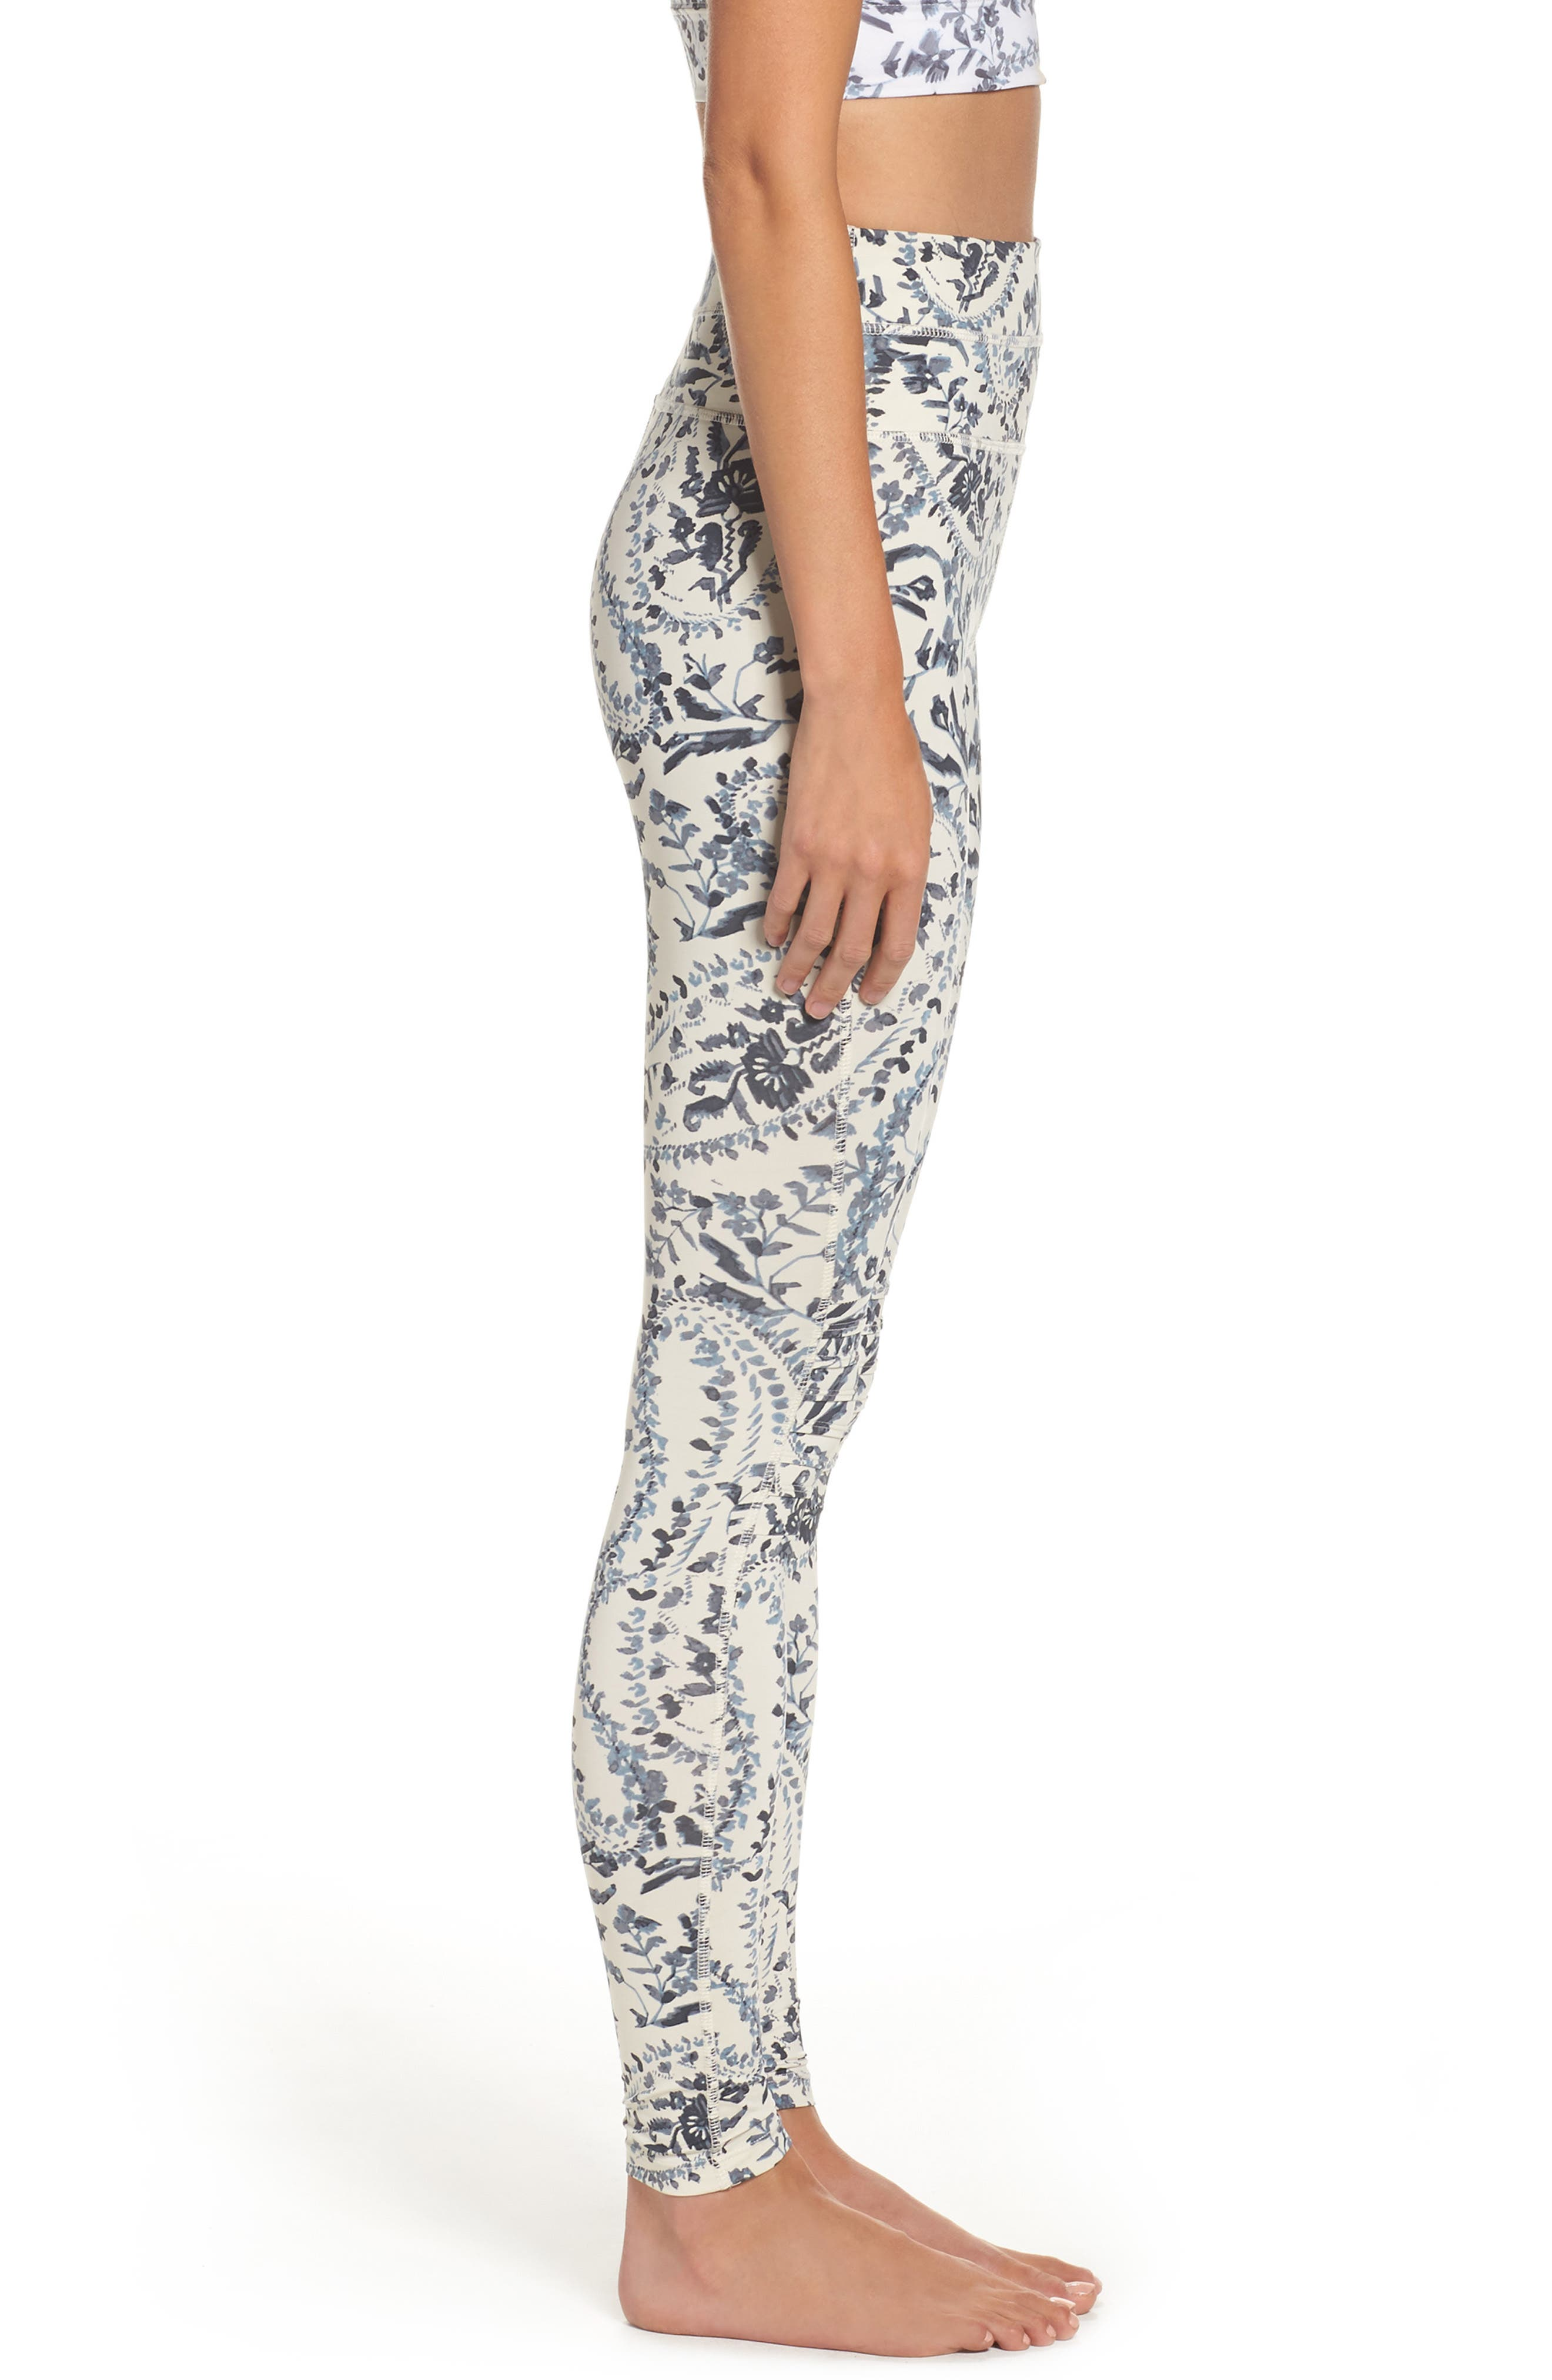 FP Movement Print City Slicker High Waist Leggings,                             Alternate thumbnail 3, color,                             400